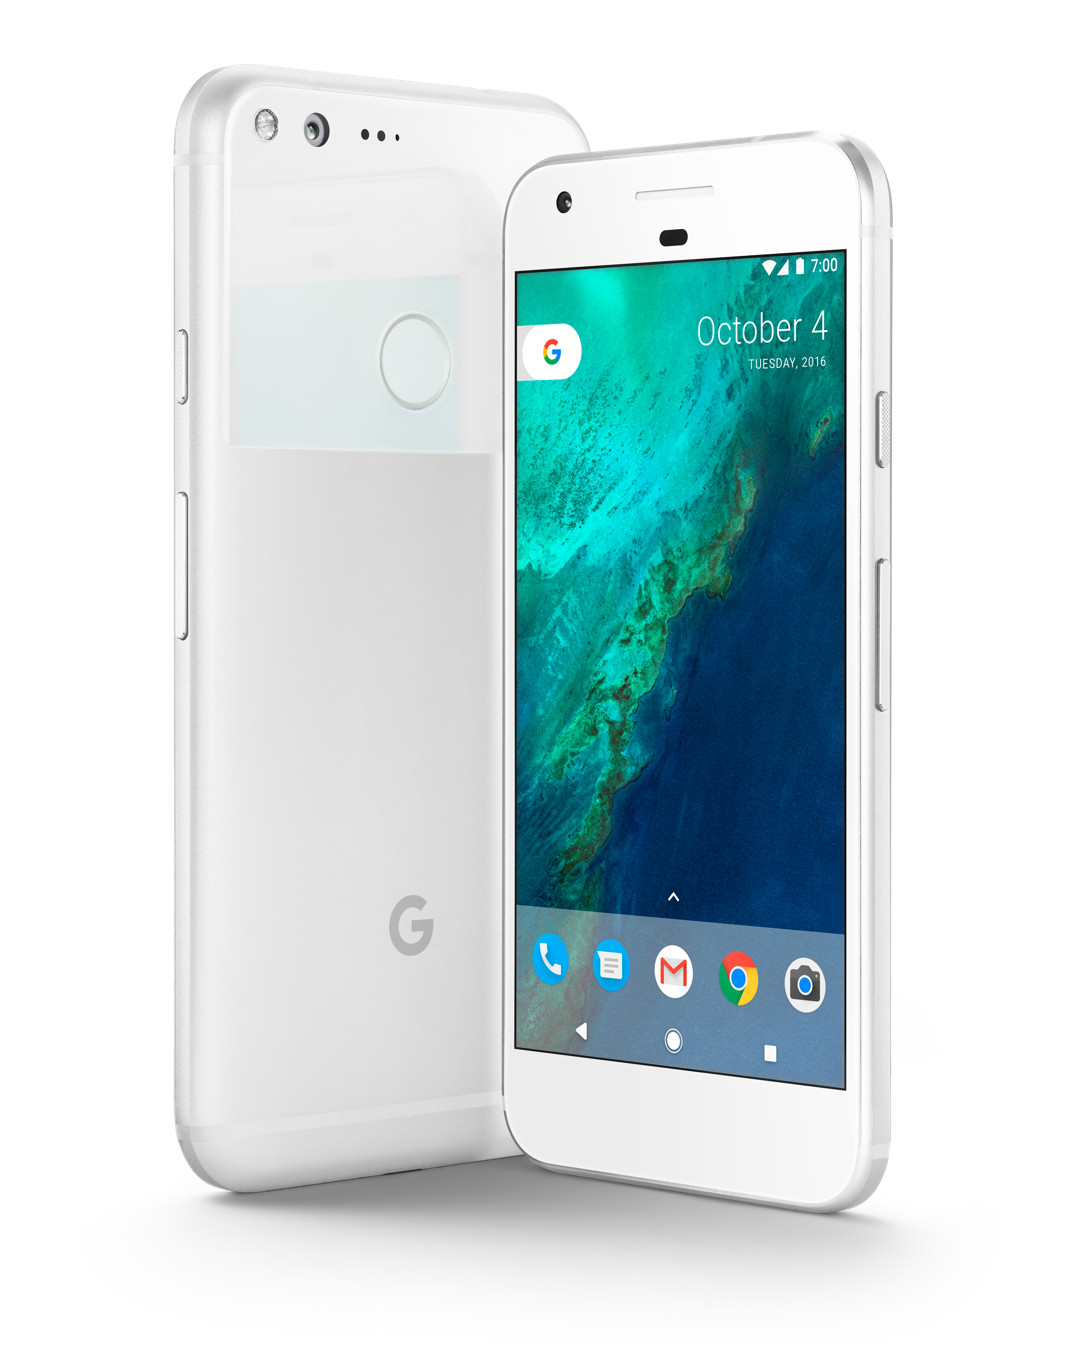 google-pixel-and-pixel-xl-official-photos-and-images-2